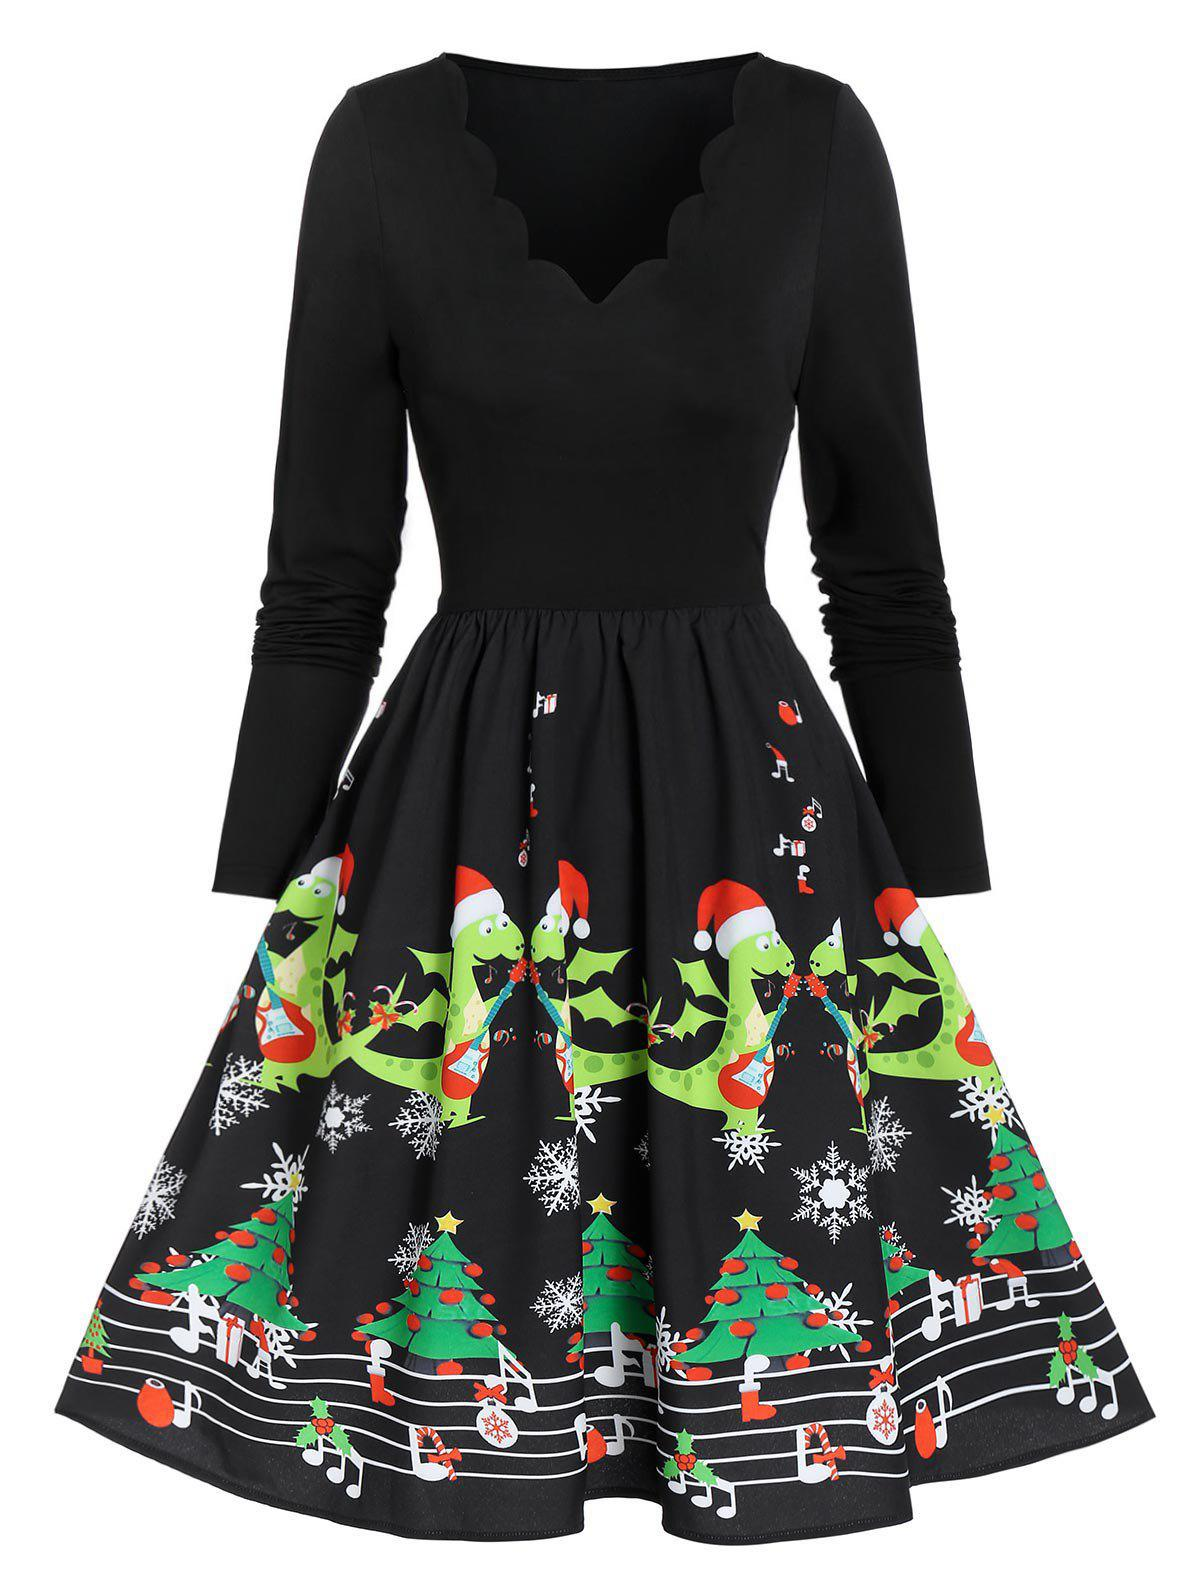 Unique Vintage Christmas Printed Scalloped Pin Up Dress